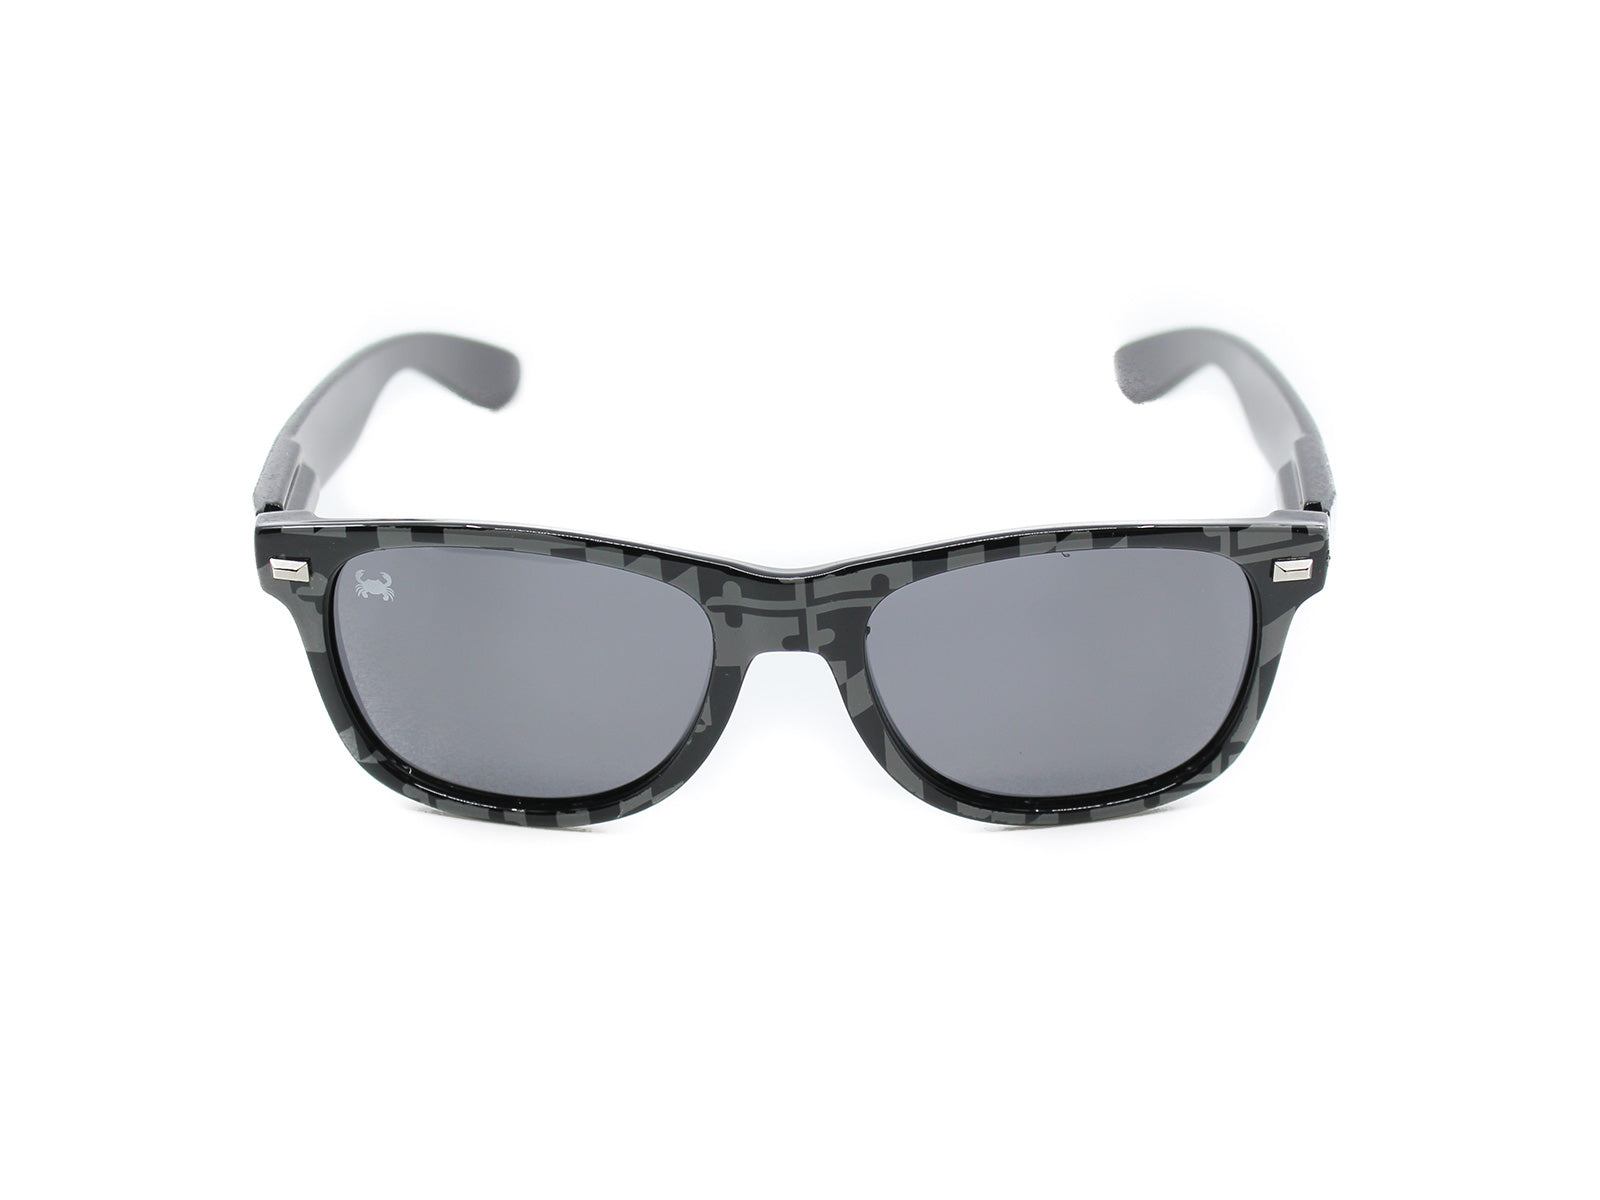 Fultons - MD Stealths: Black & Gray MD Flag / Crab Smoke Polarized